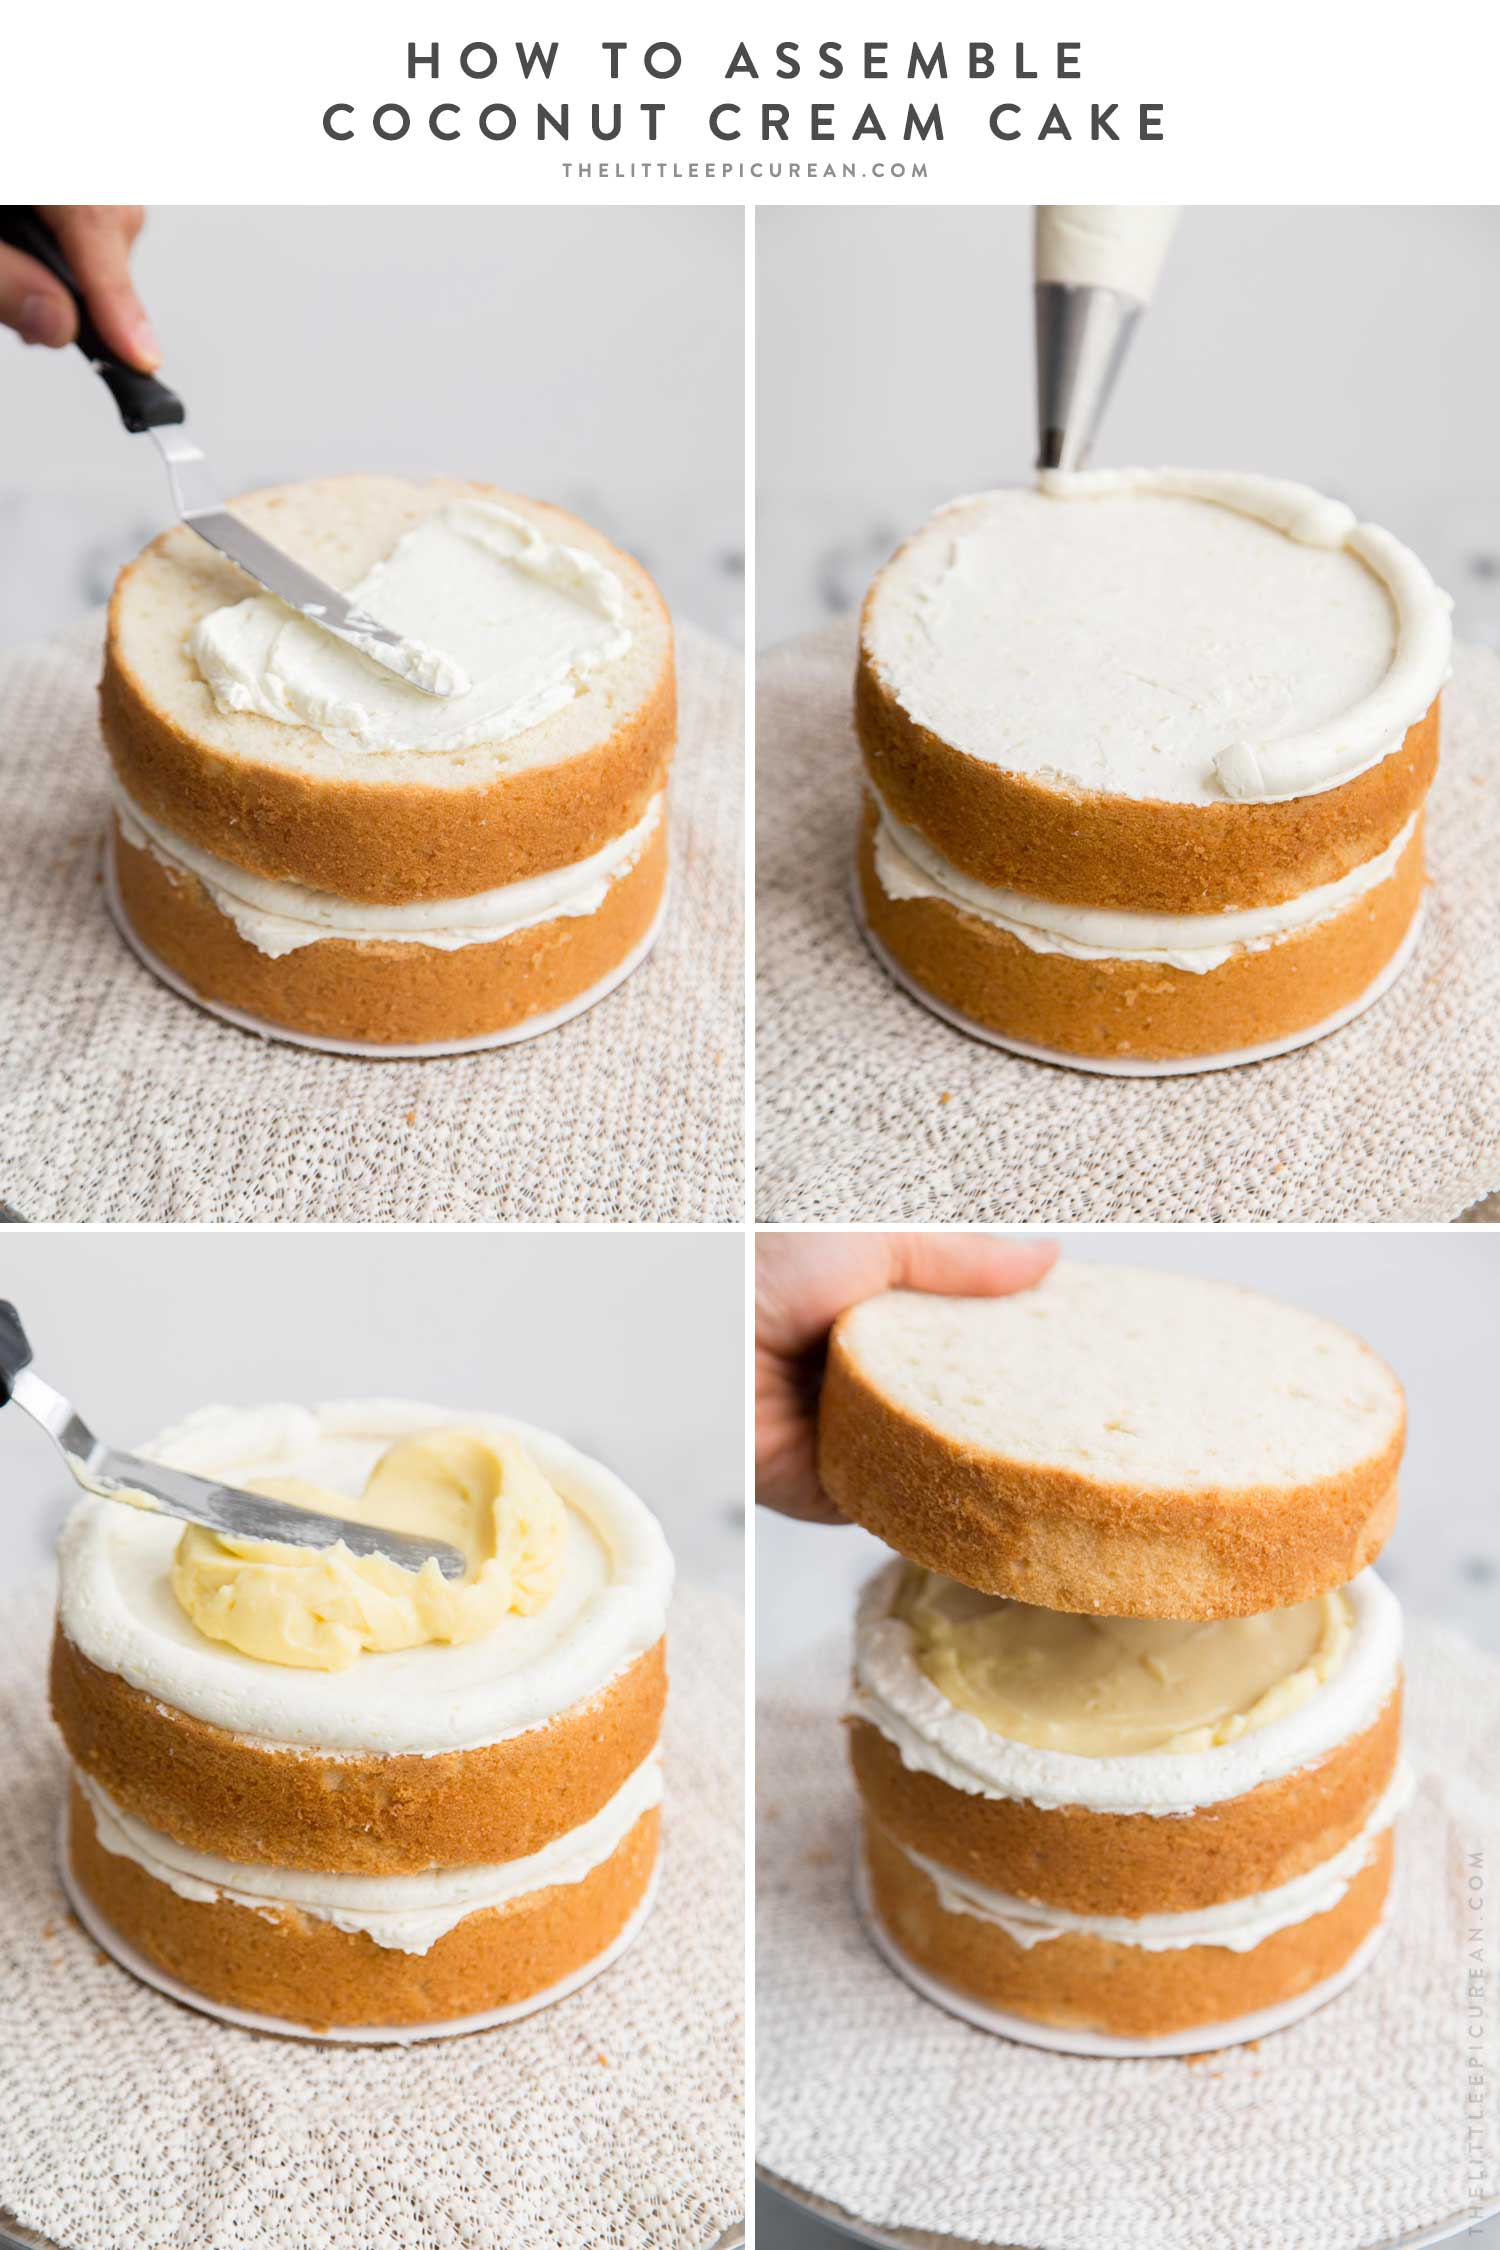 How to Assemble Coconut Cream Cake